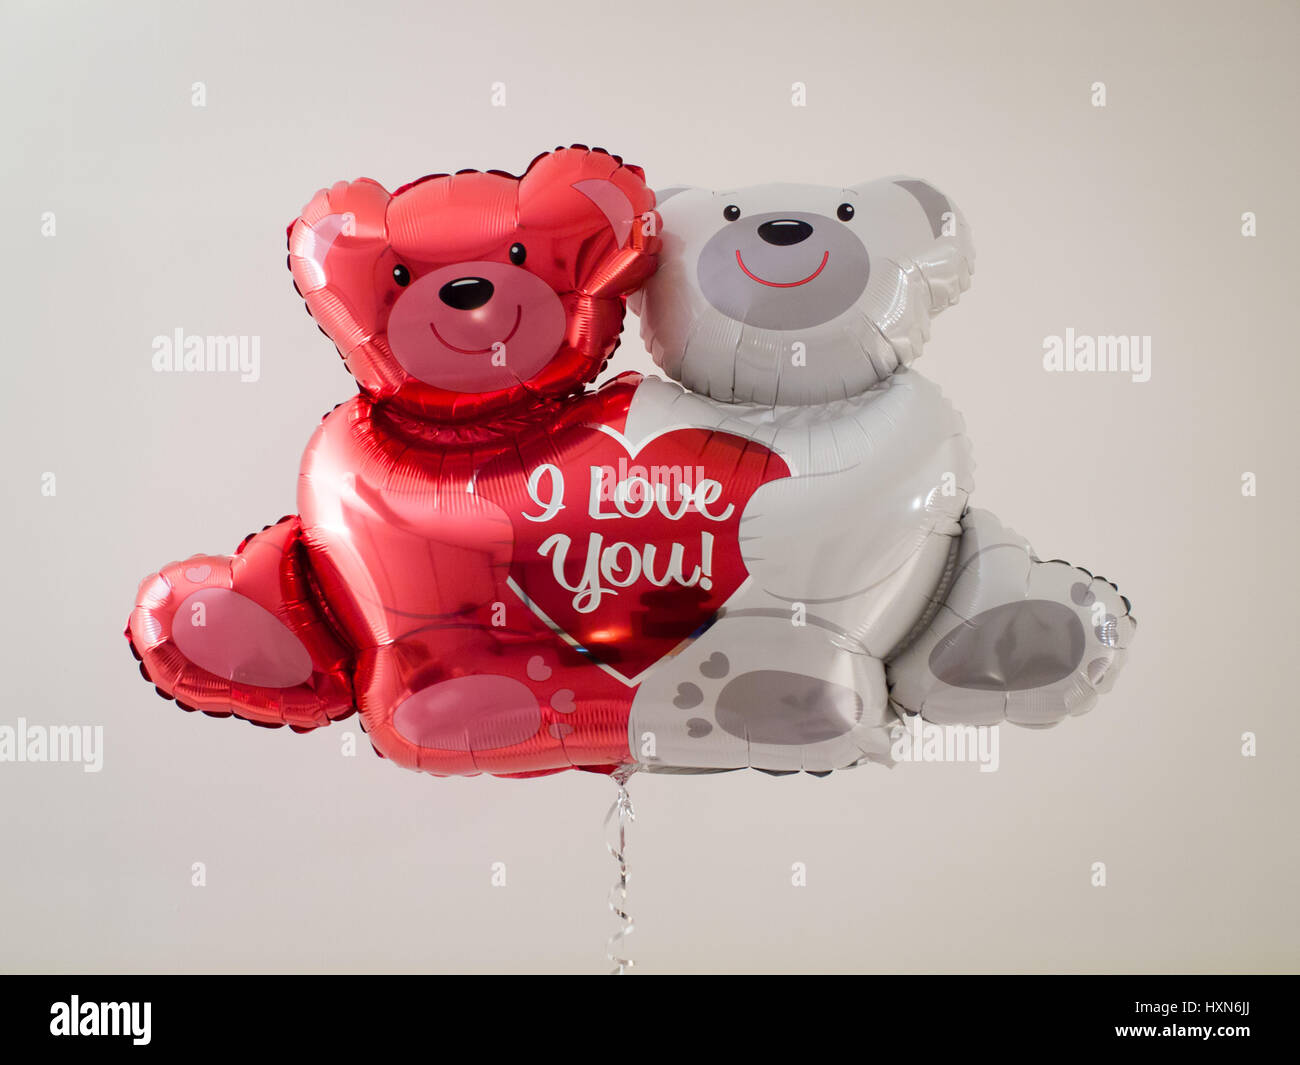 A Valentine's Day bear balloon that says 'I Love You' :) - Stock Image